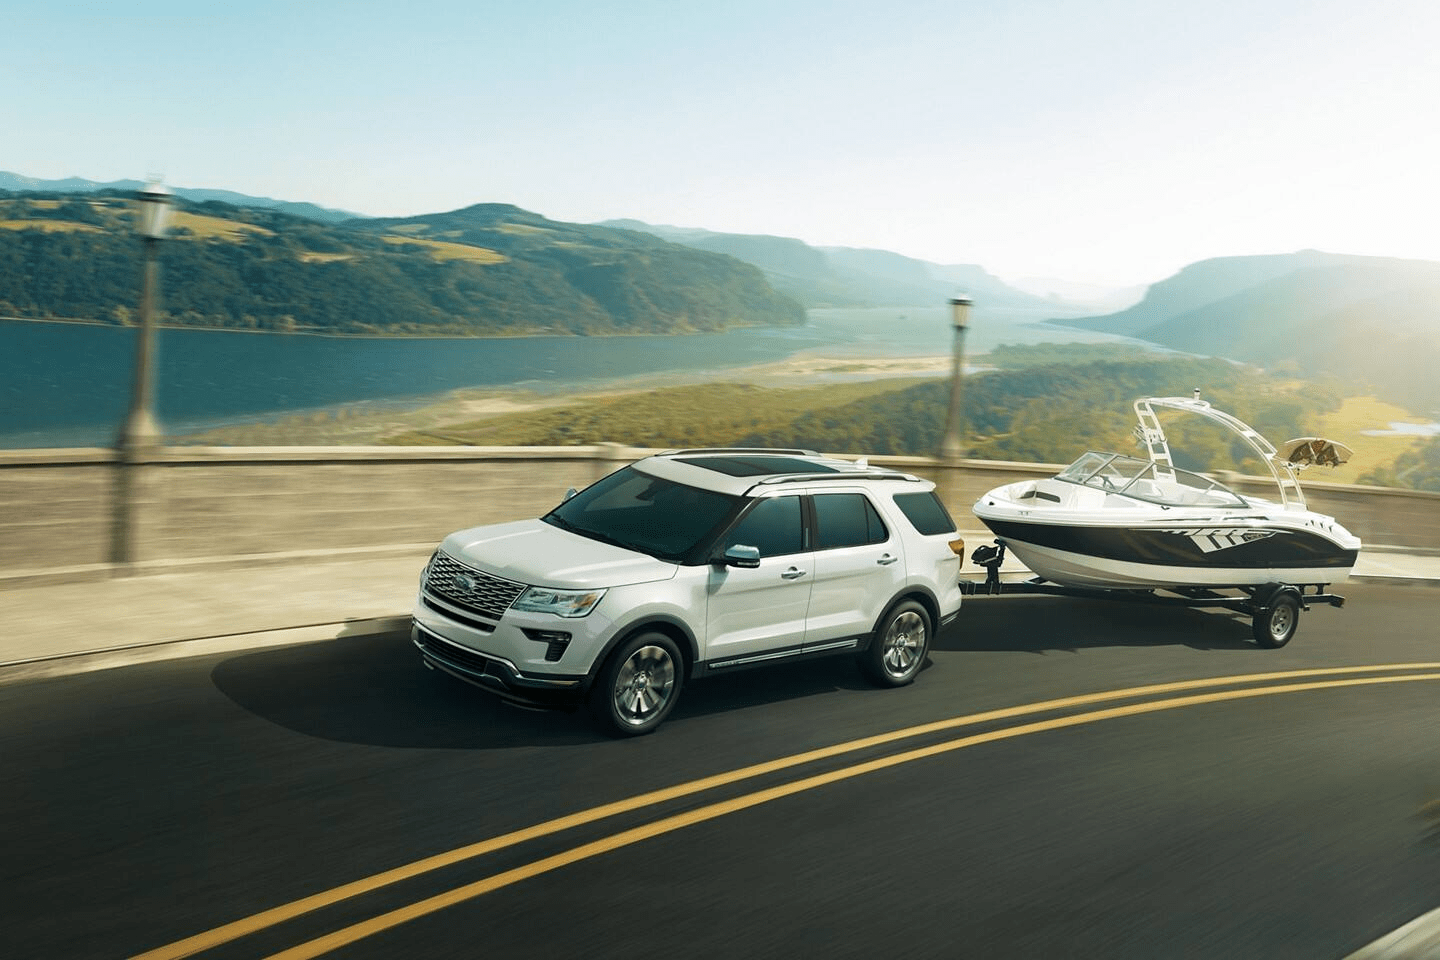 2019 Ford Explorer towing a boat